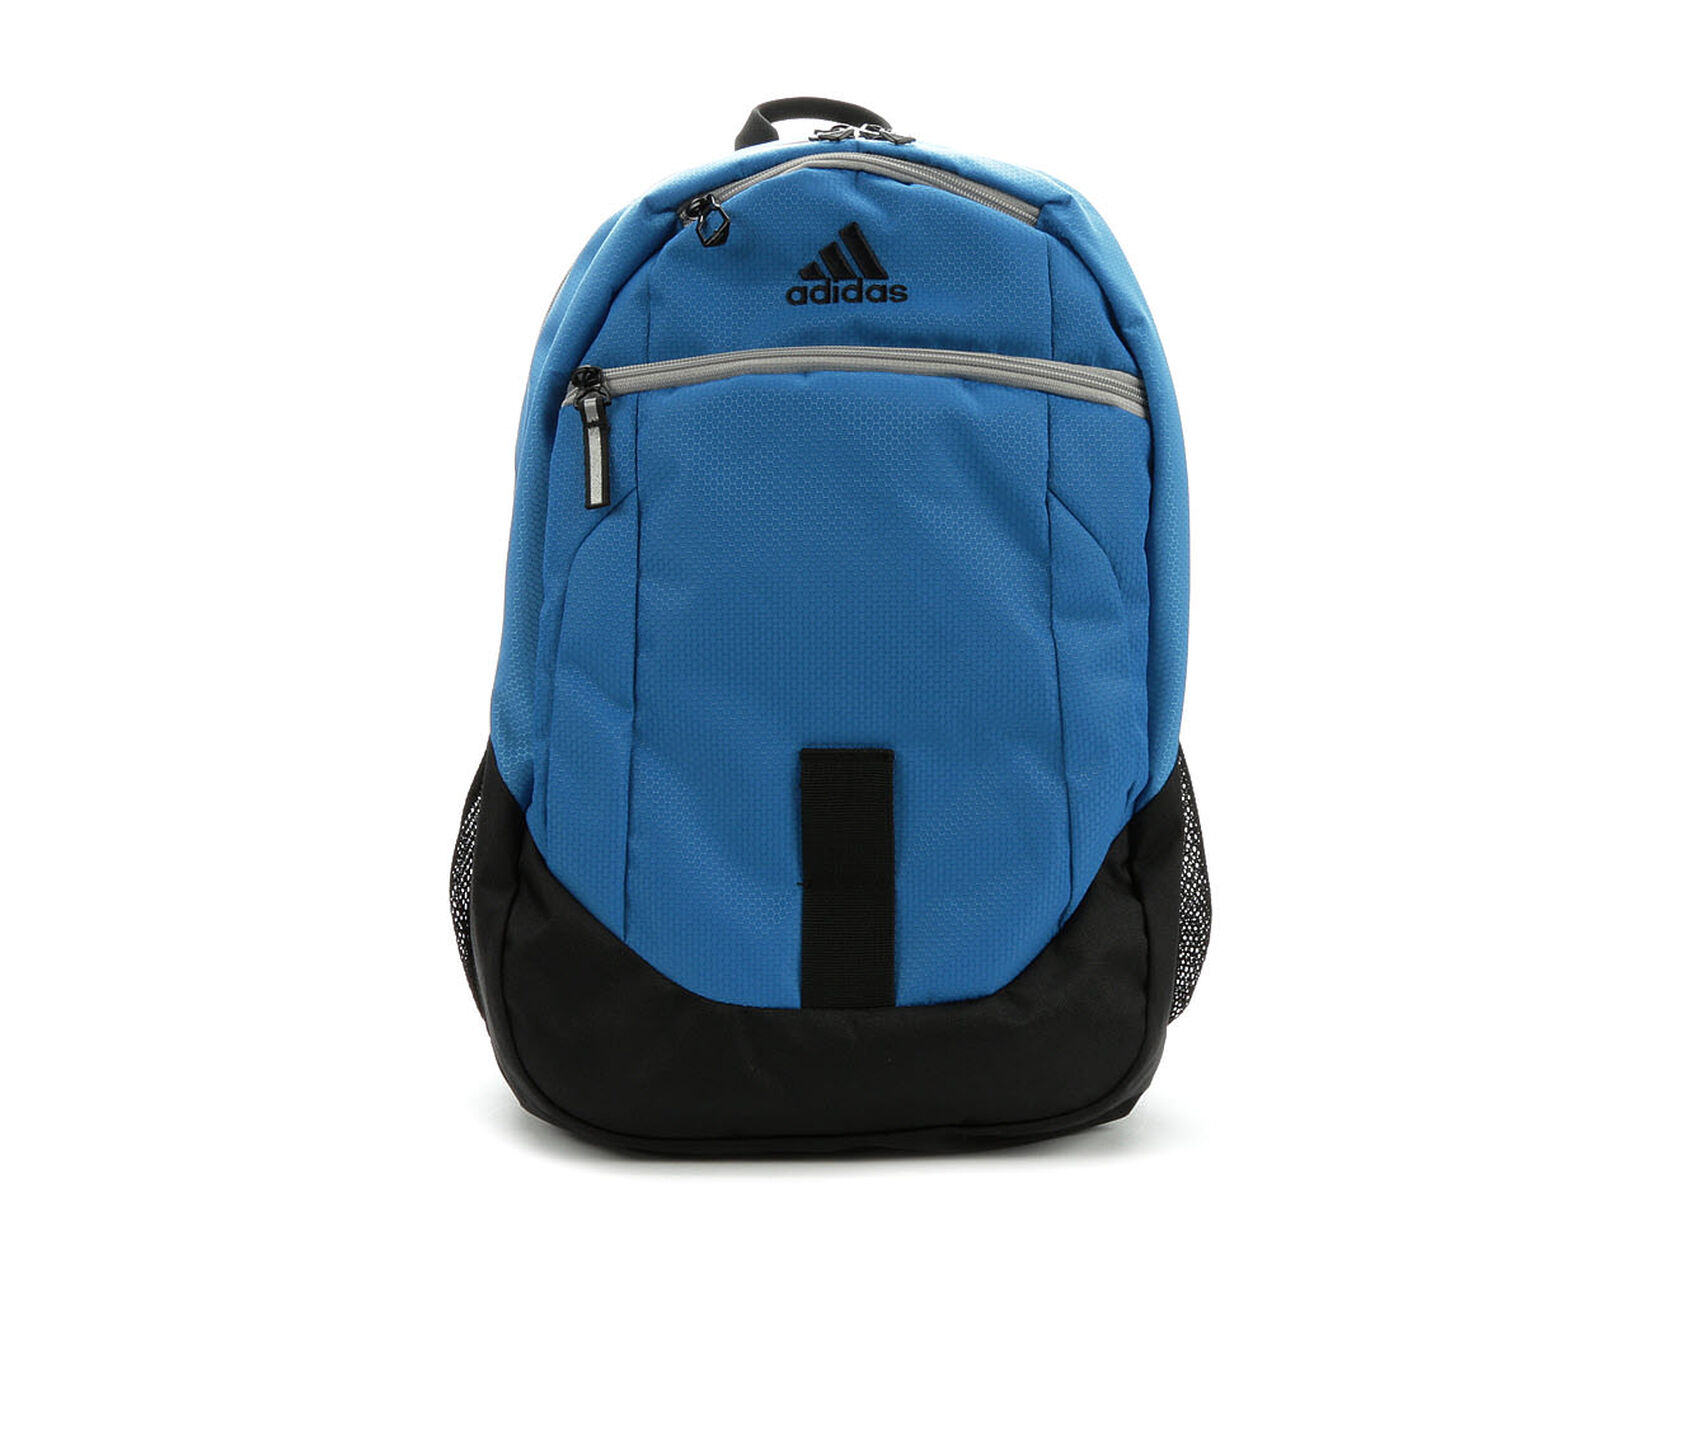 efd7c6cca7 Adidas Foundation IV Backpack. Previous